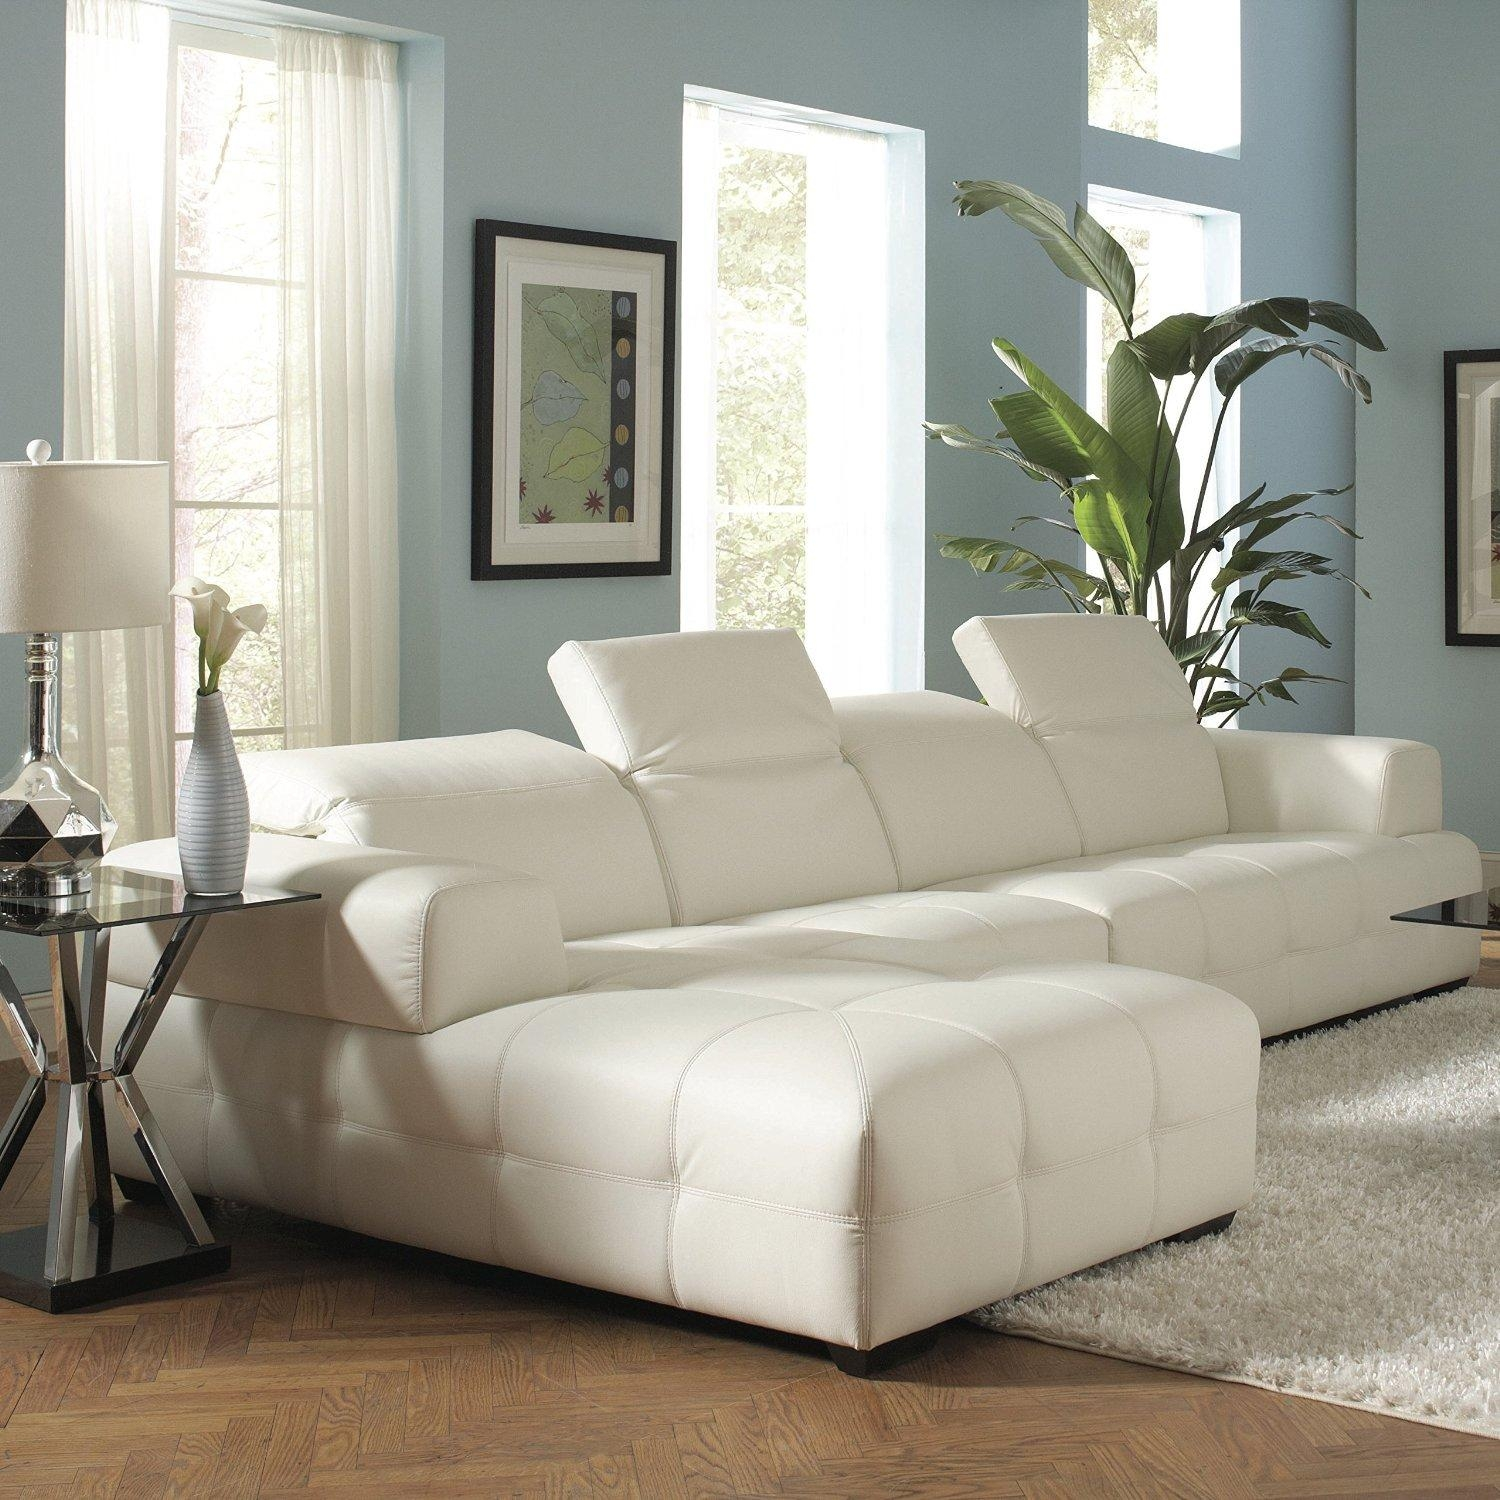 Coaster Sectional Sofa With Design Ideas 22086 | Kengire For Coaster Sectional Sofas (Image 11 of 20)